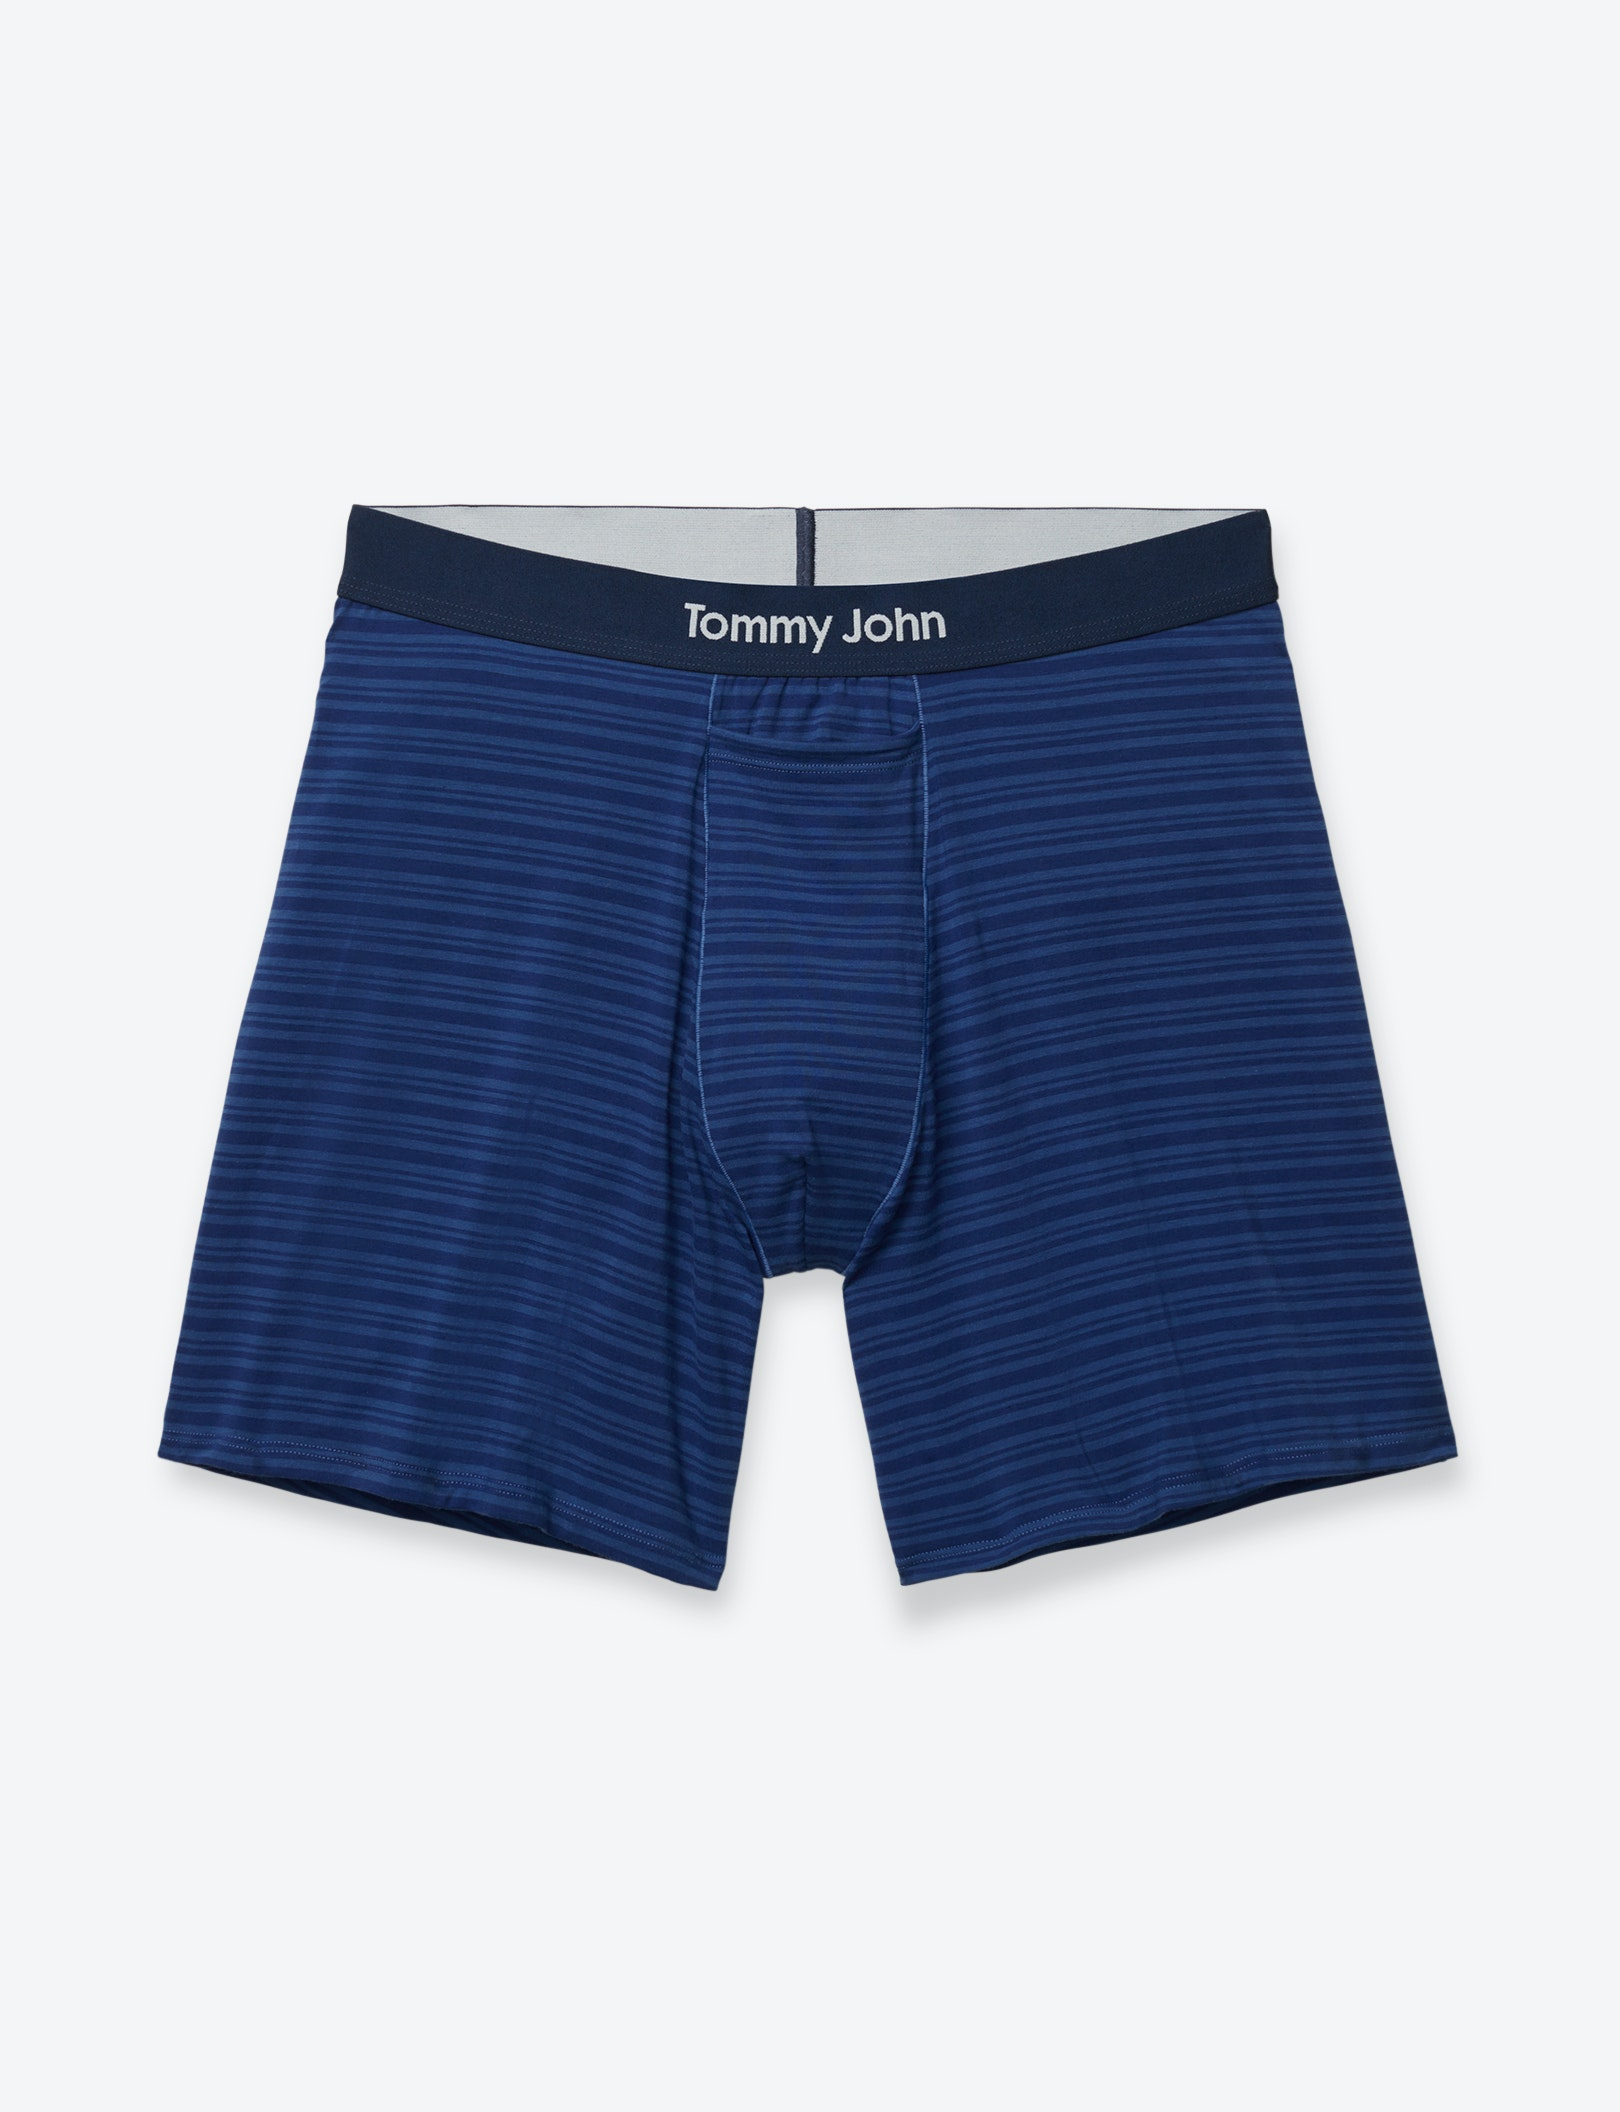 Image of Cool Cotton Bold Relaxed Fit Boxer